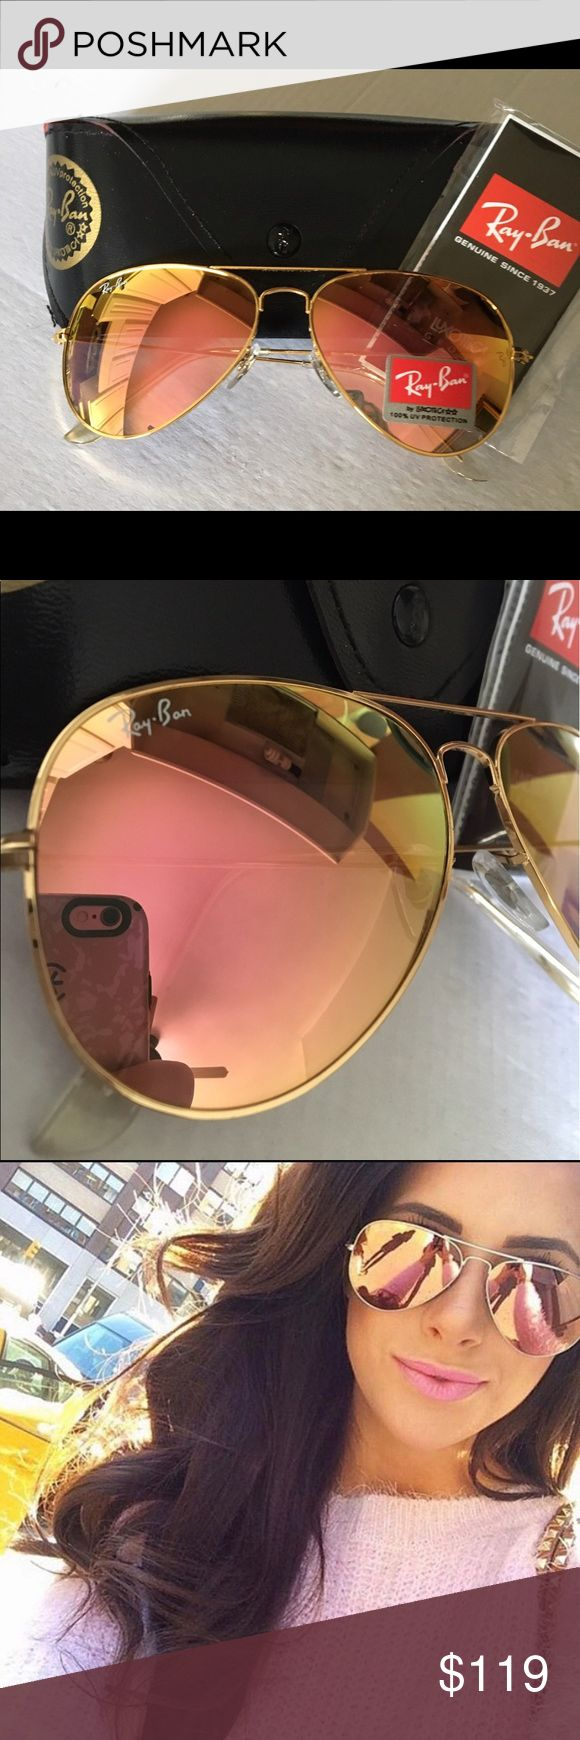 ray ban model rb3025  17 Best ideas about Ray Ban Rb3025 on Pinterest